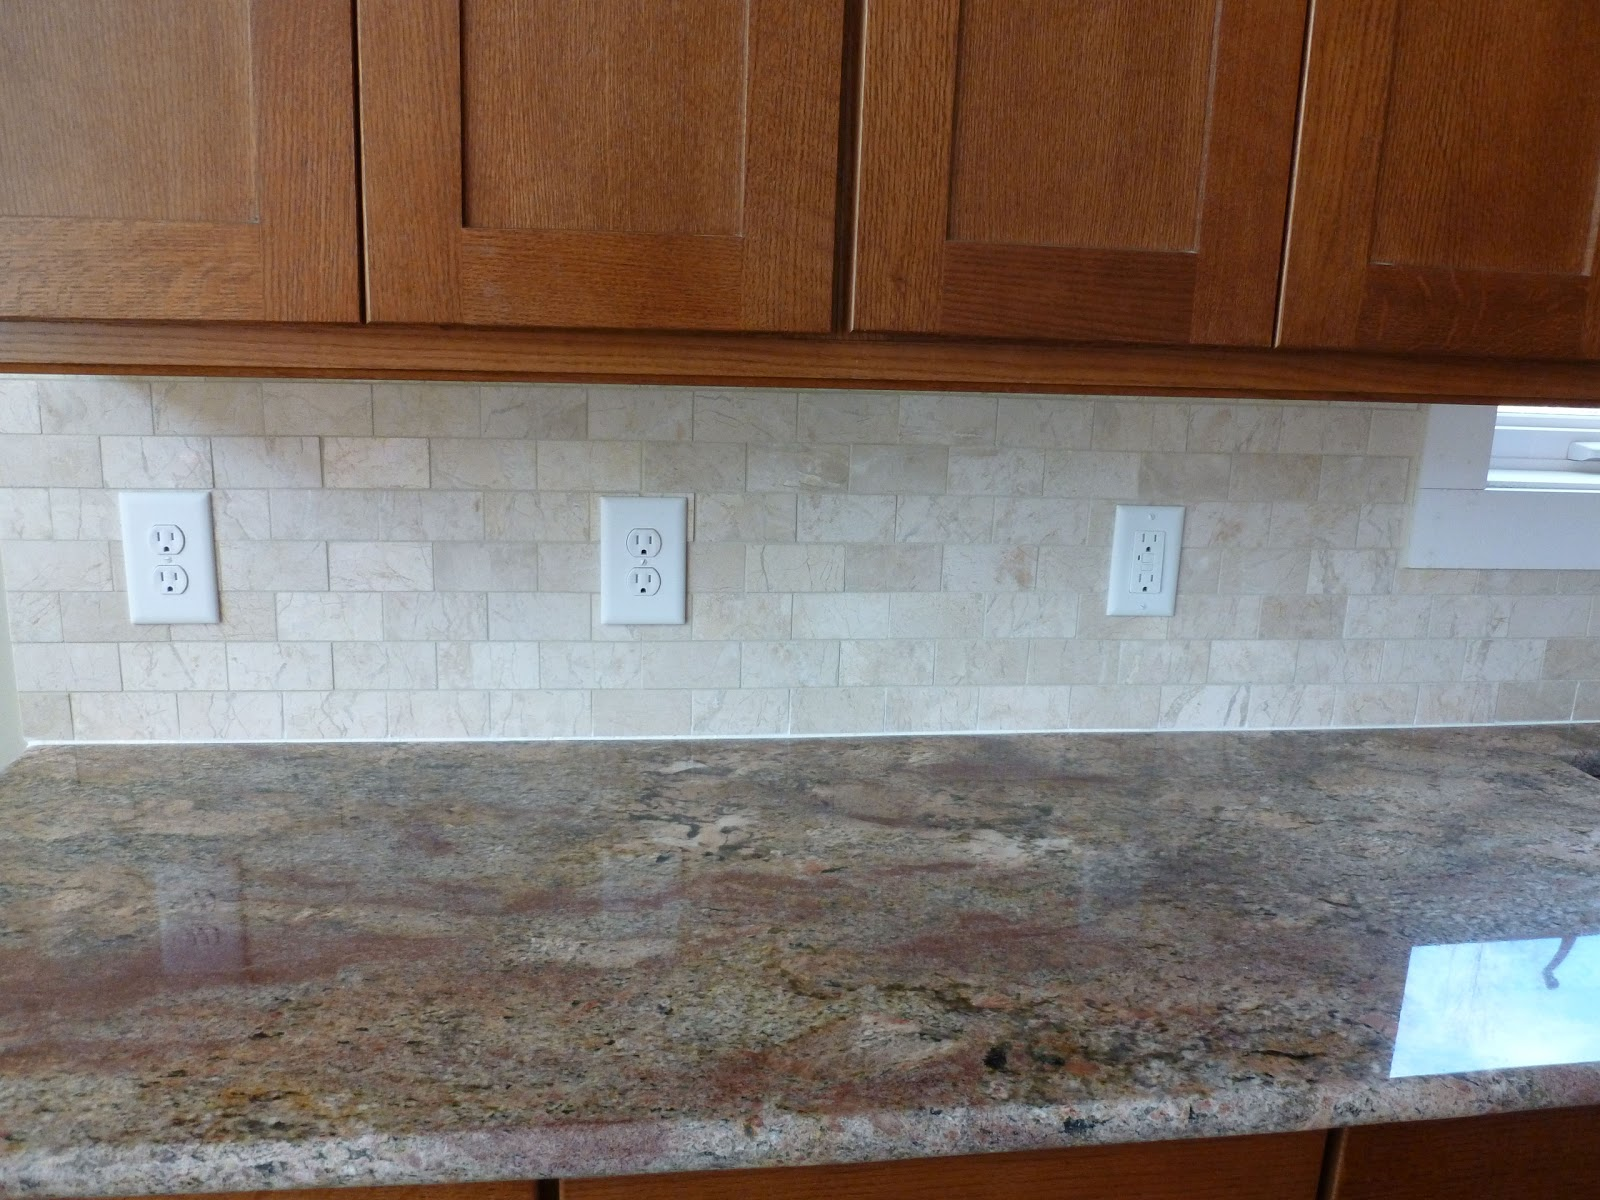 Bob and flora 39 s new house Kitchen tile backsplash